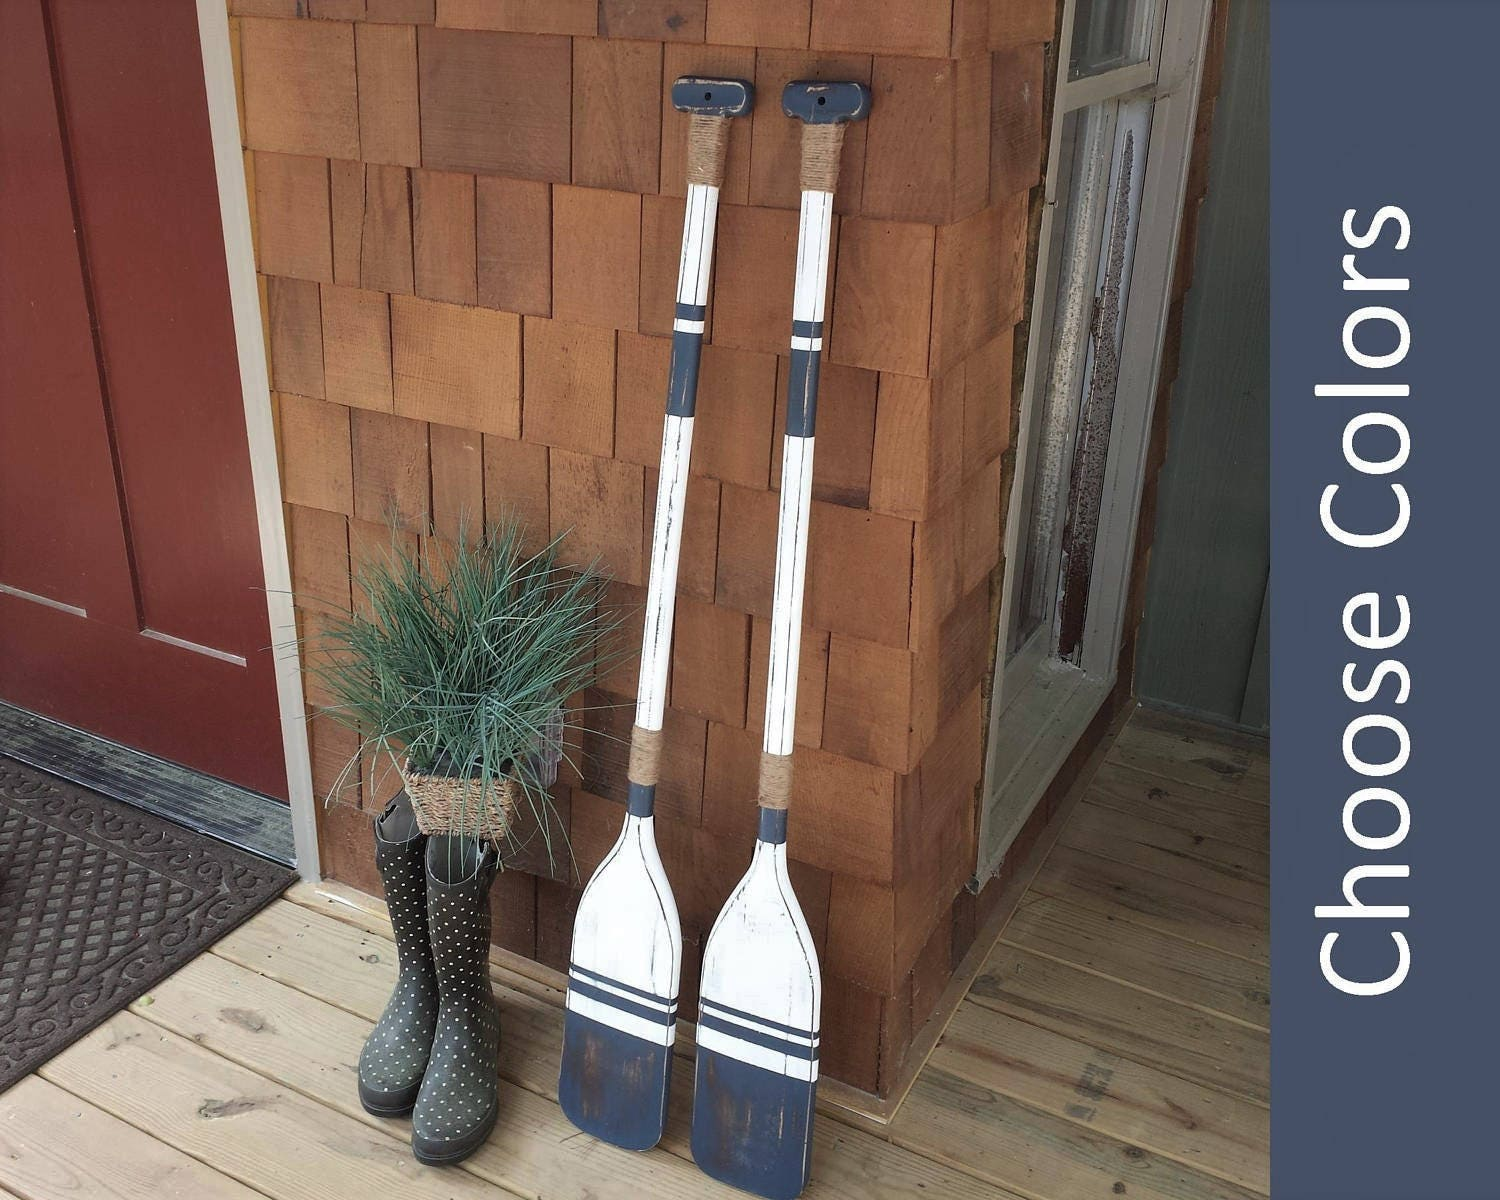 Wooden Oars Pair Of Oars 2 Oars 48x5 Decorative Etsy